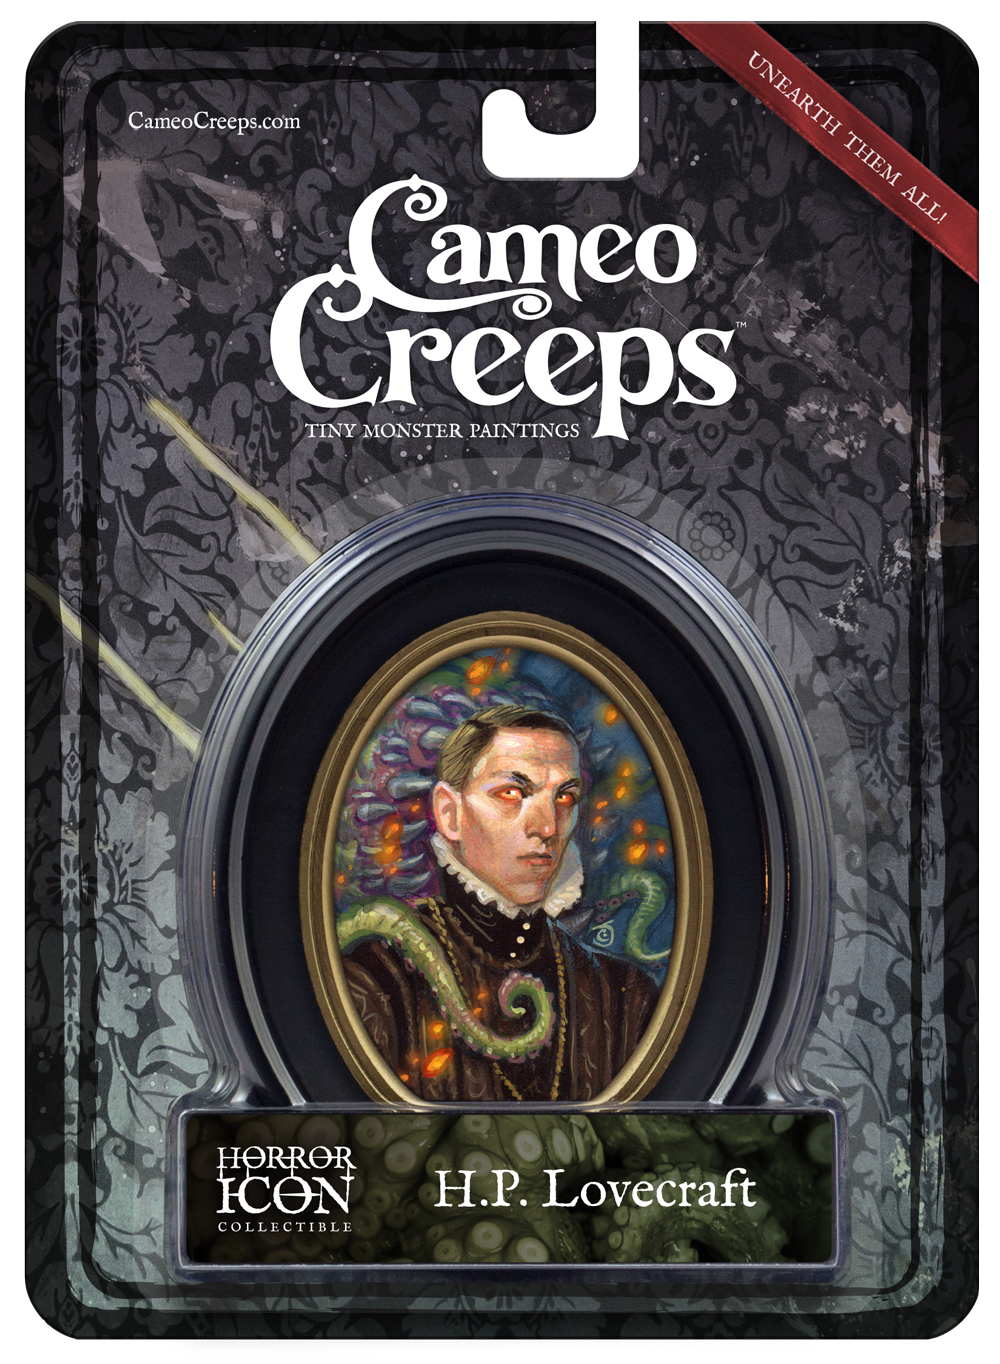 Cameo-Creeps-HP-Lovecraft-Packaging.png